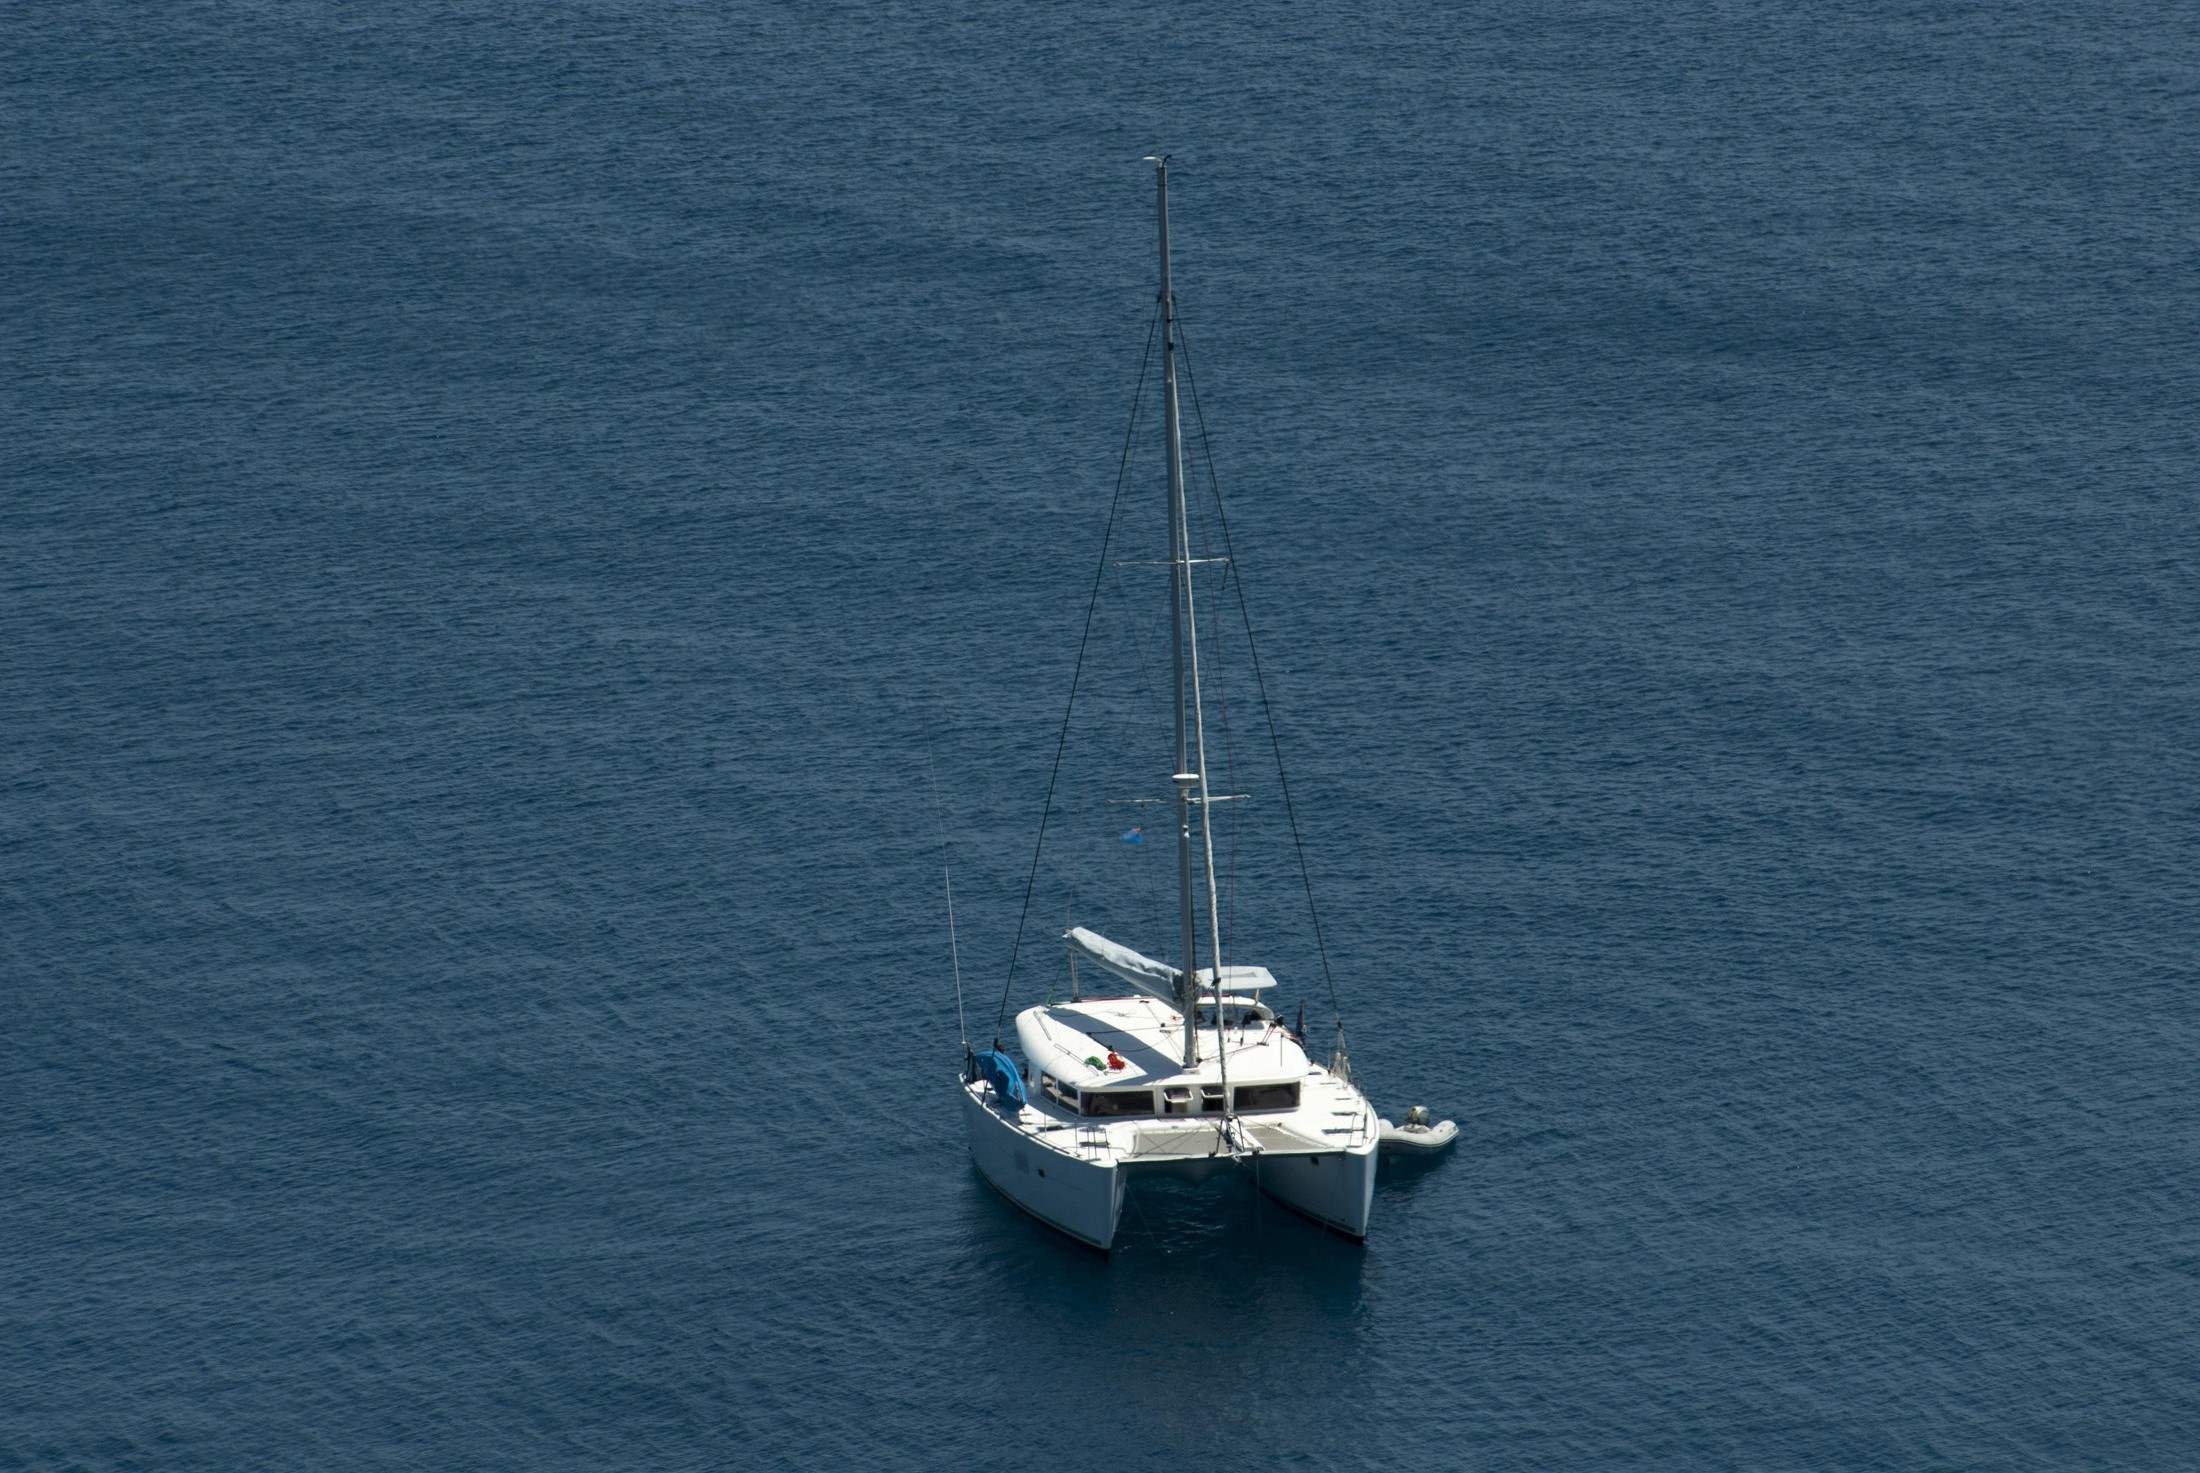 Luxury catamaran moored offshore in mid ocean with copyspace, high angle view